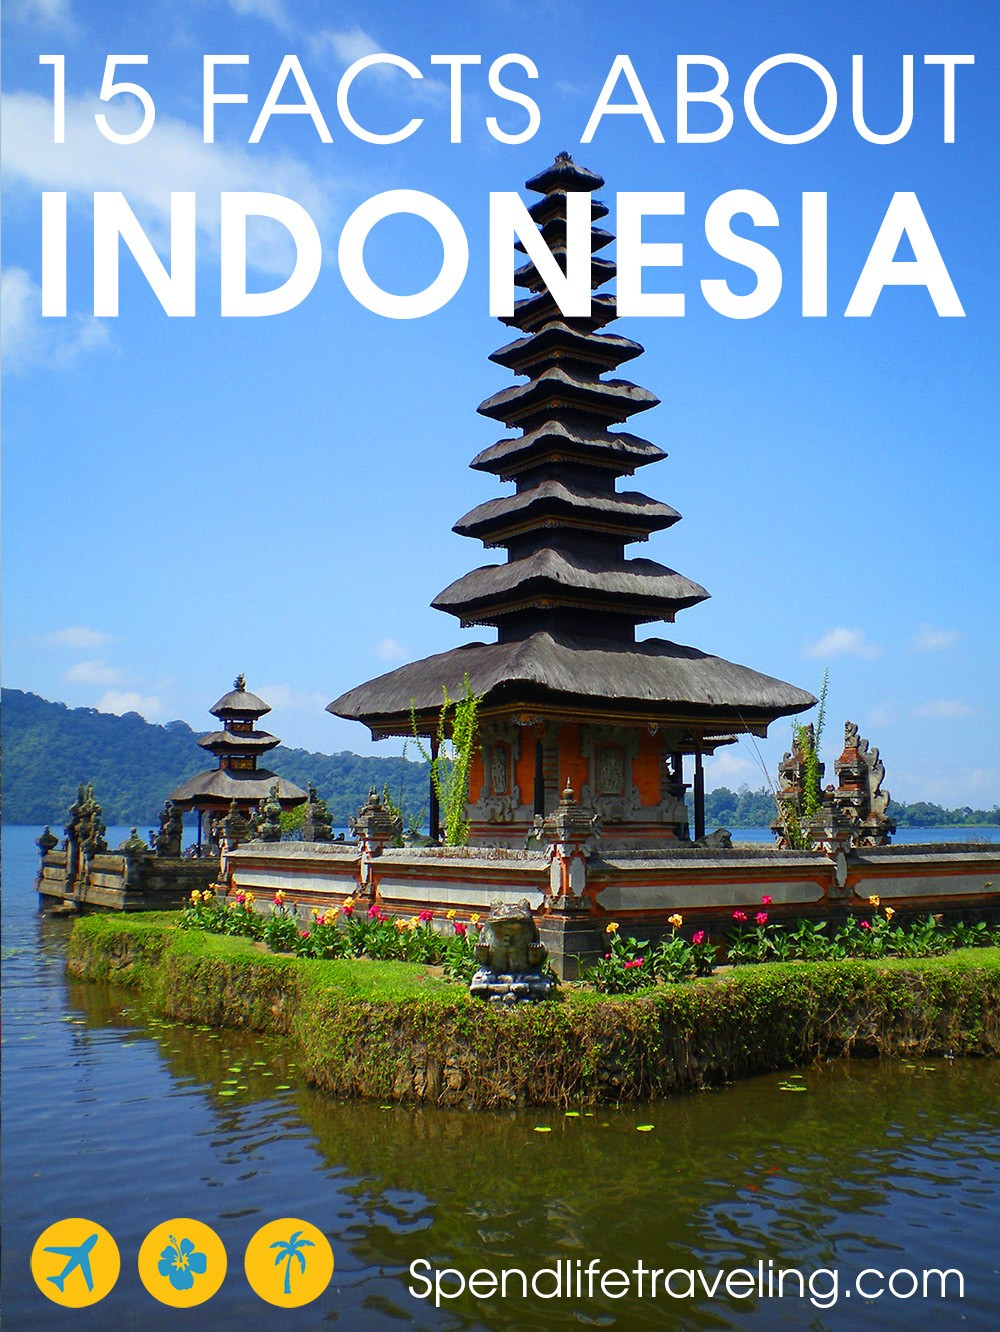 15 interesting facts about Indonesia. #facts #indonesia